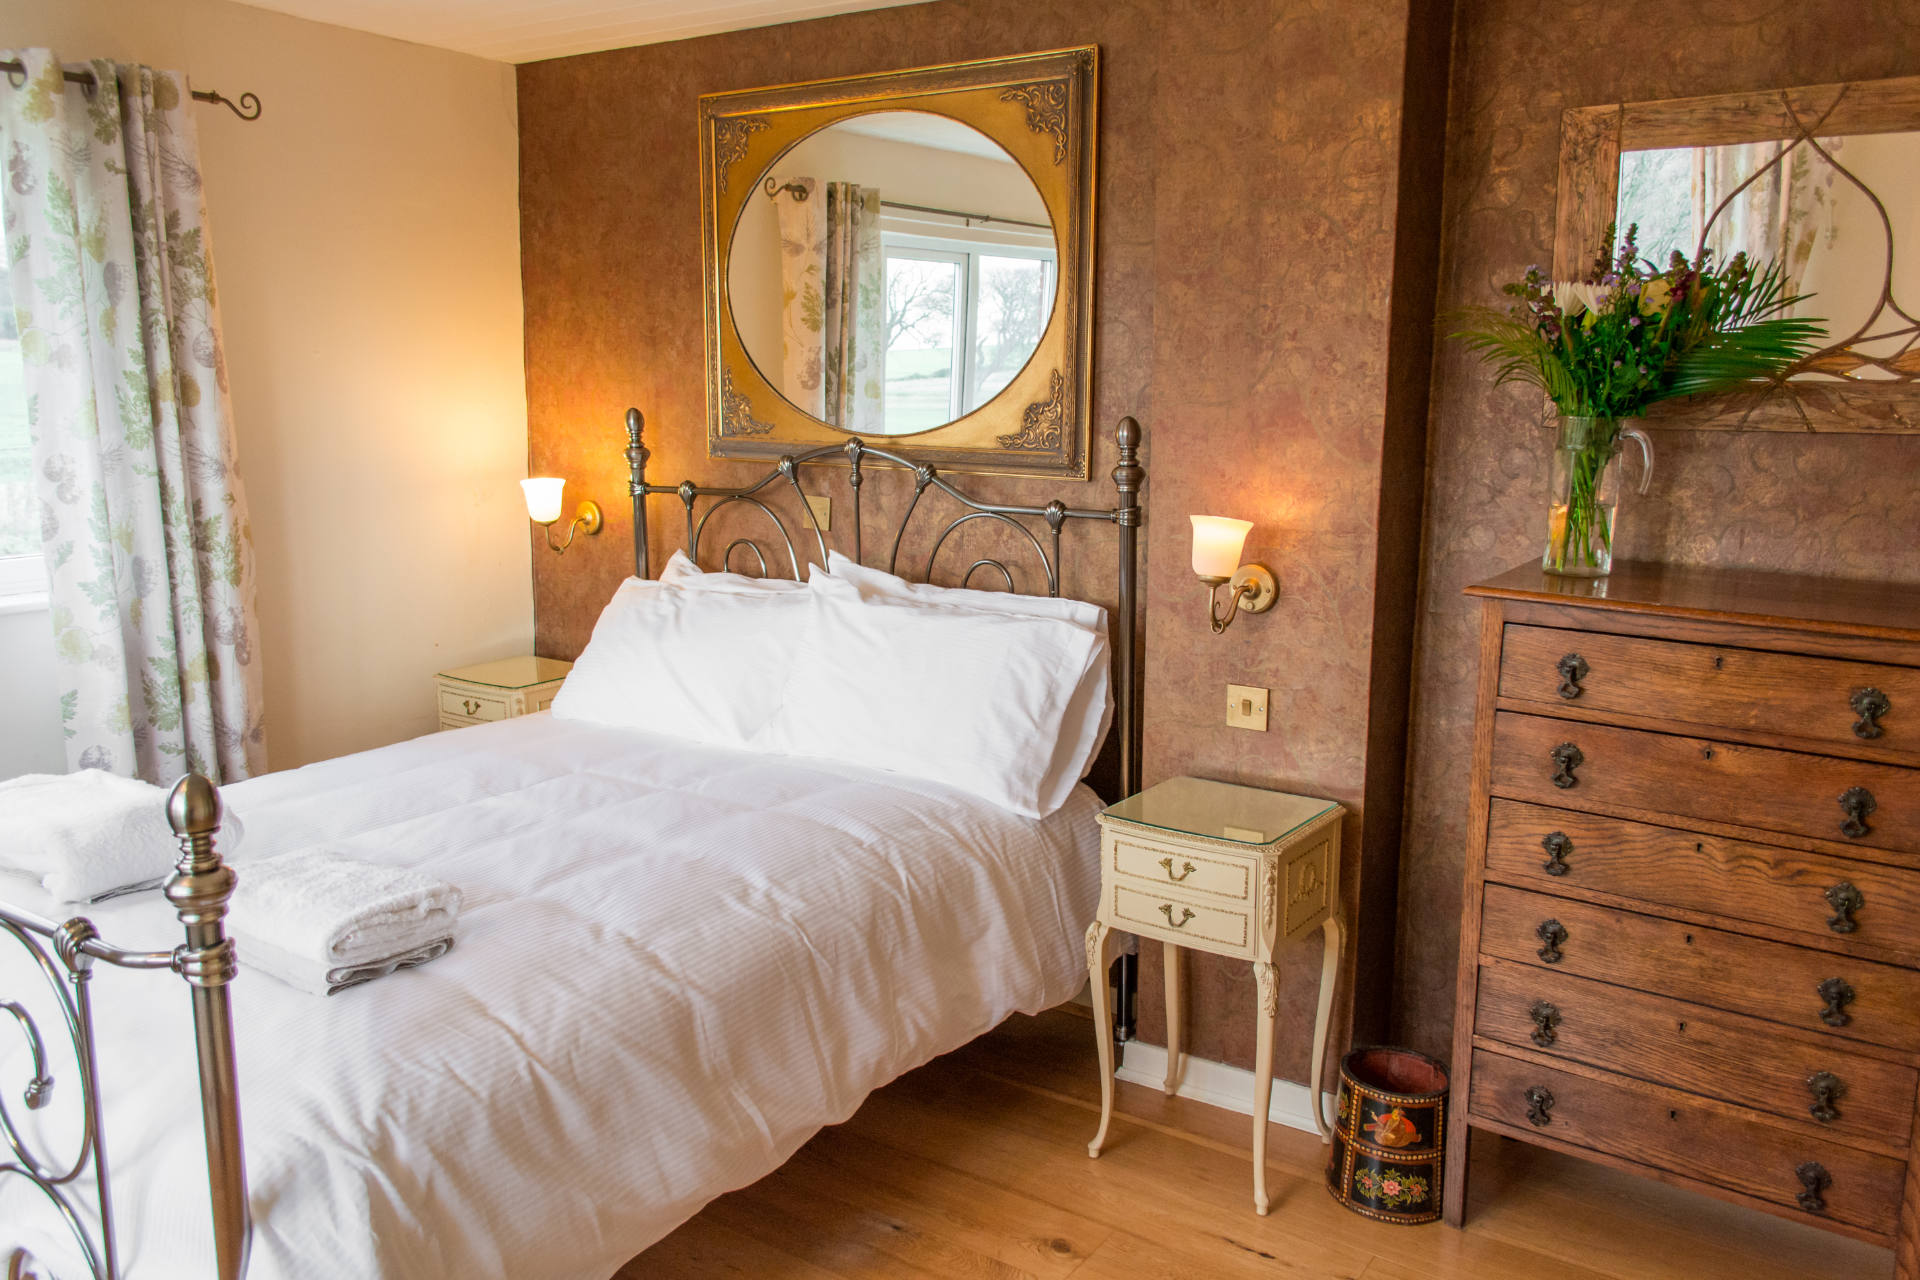 Manor Lodge's master bedroom with mirror over the bed and bedside table.